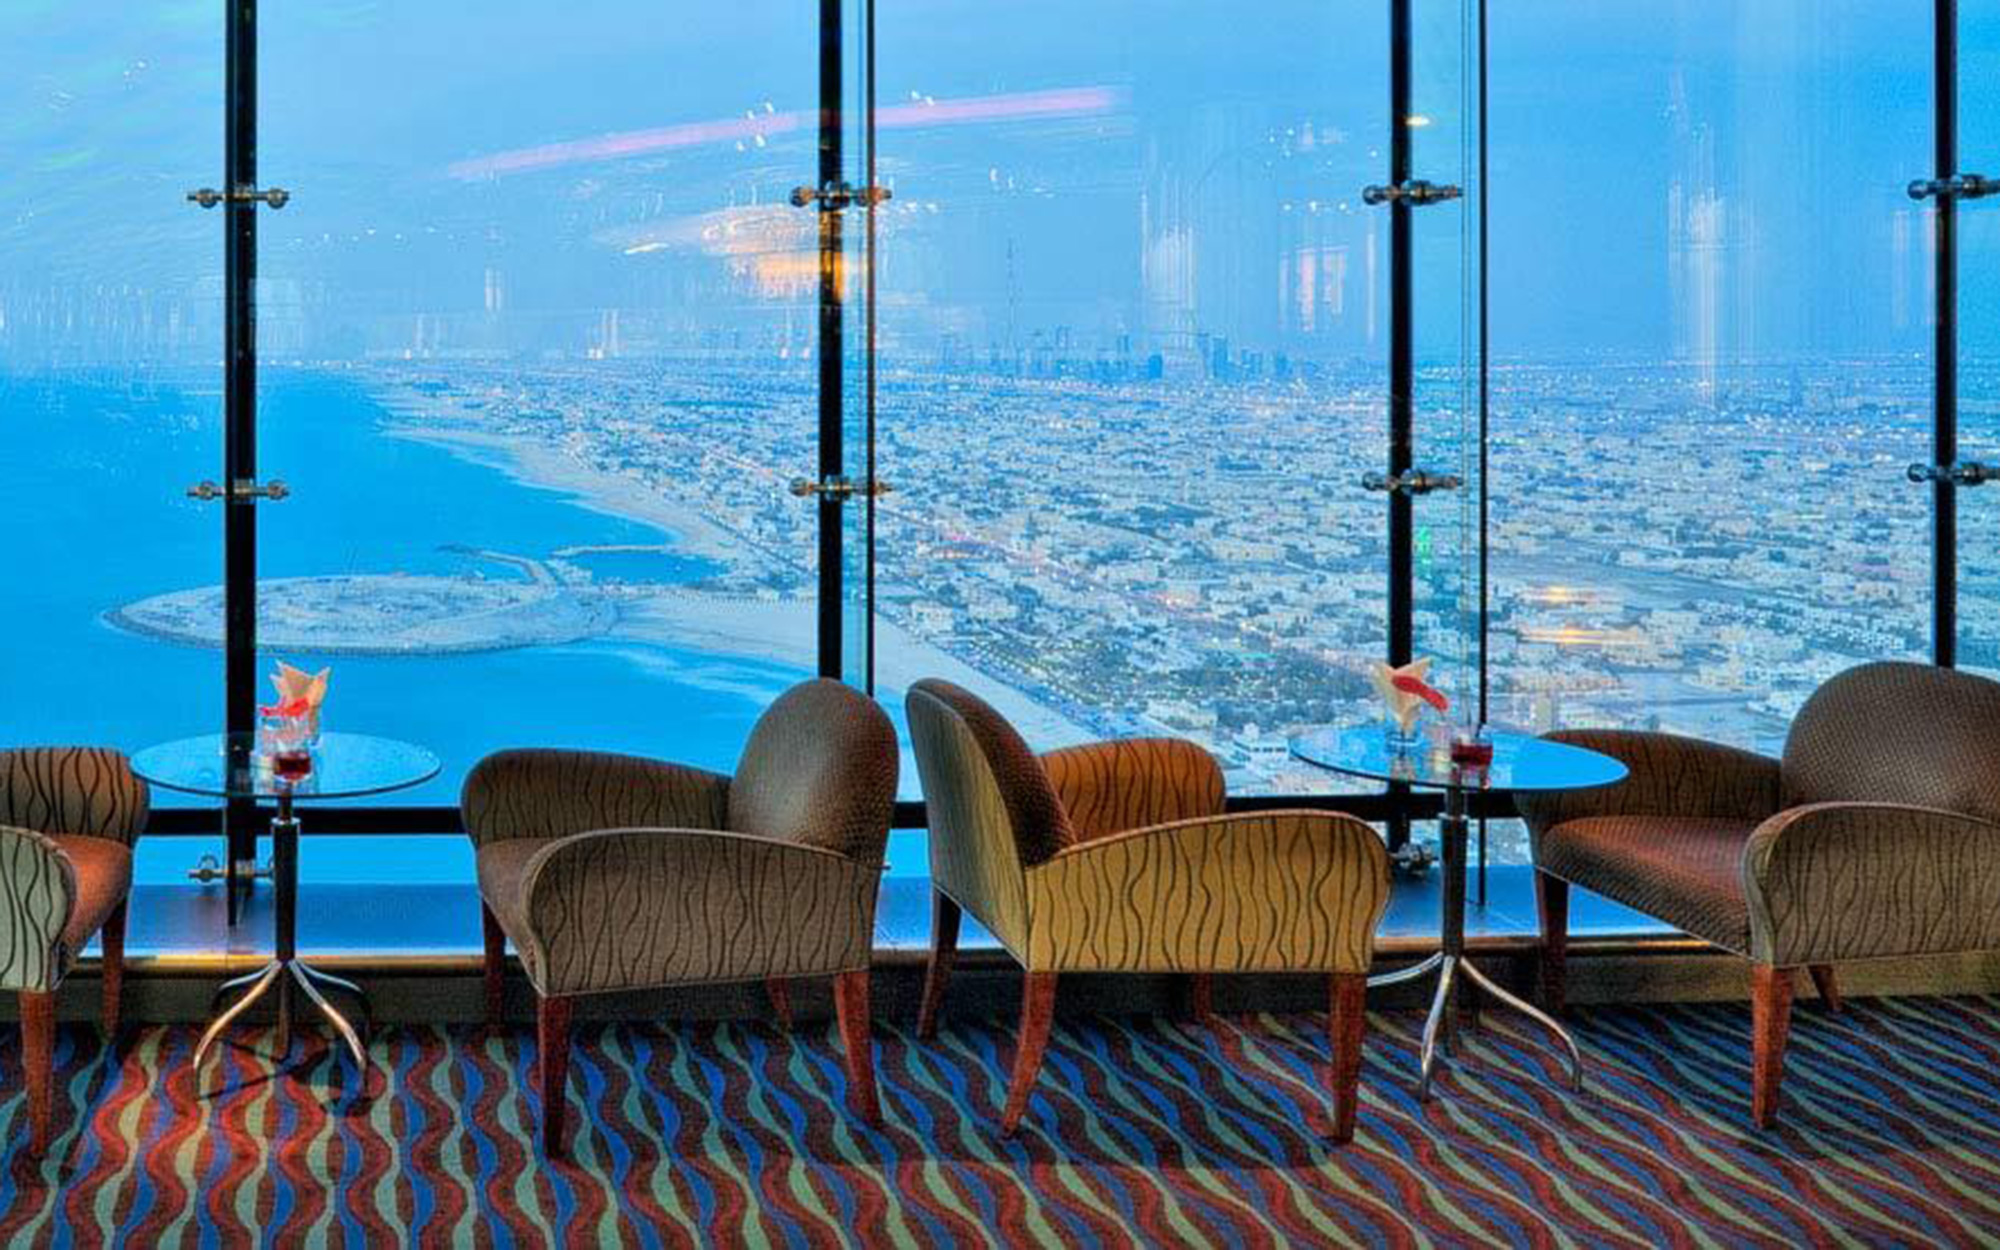 Skyview Bar in Burj Al Arab Jumeirah, Dubai